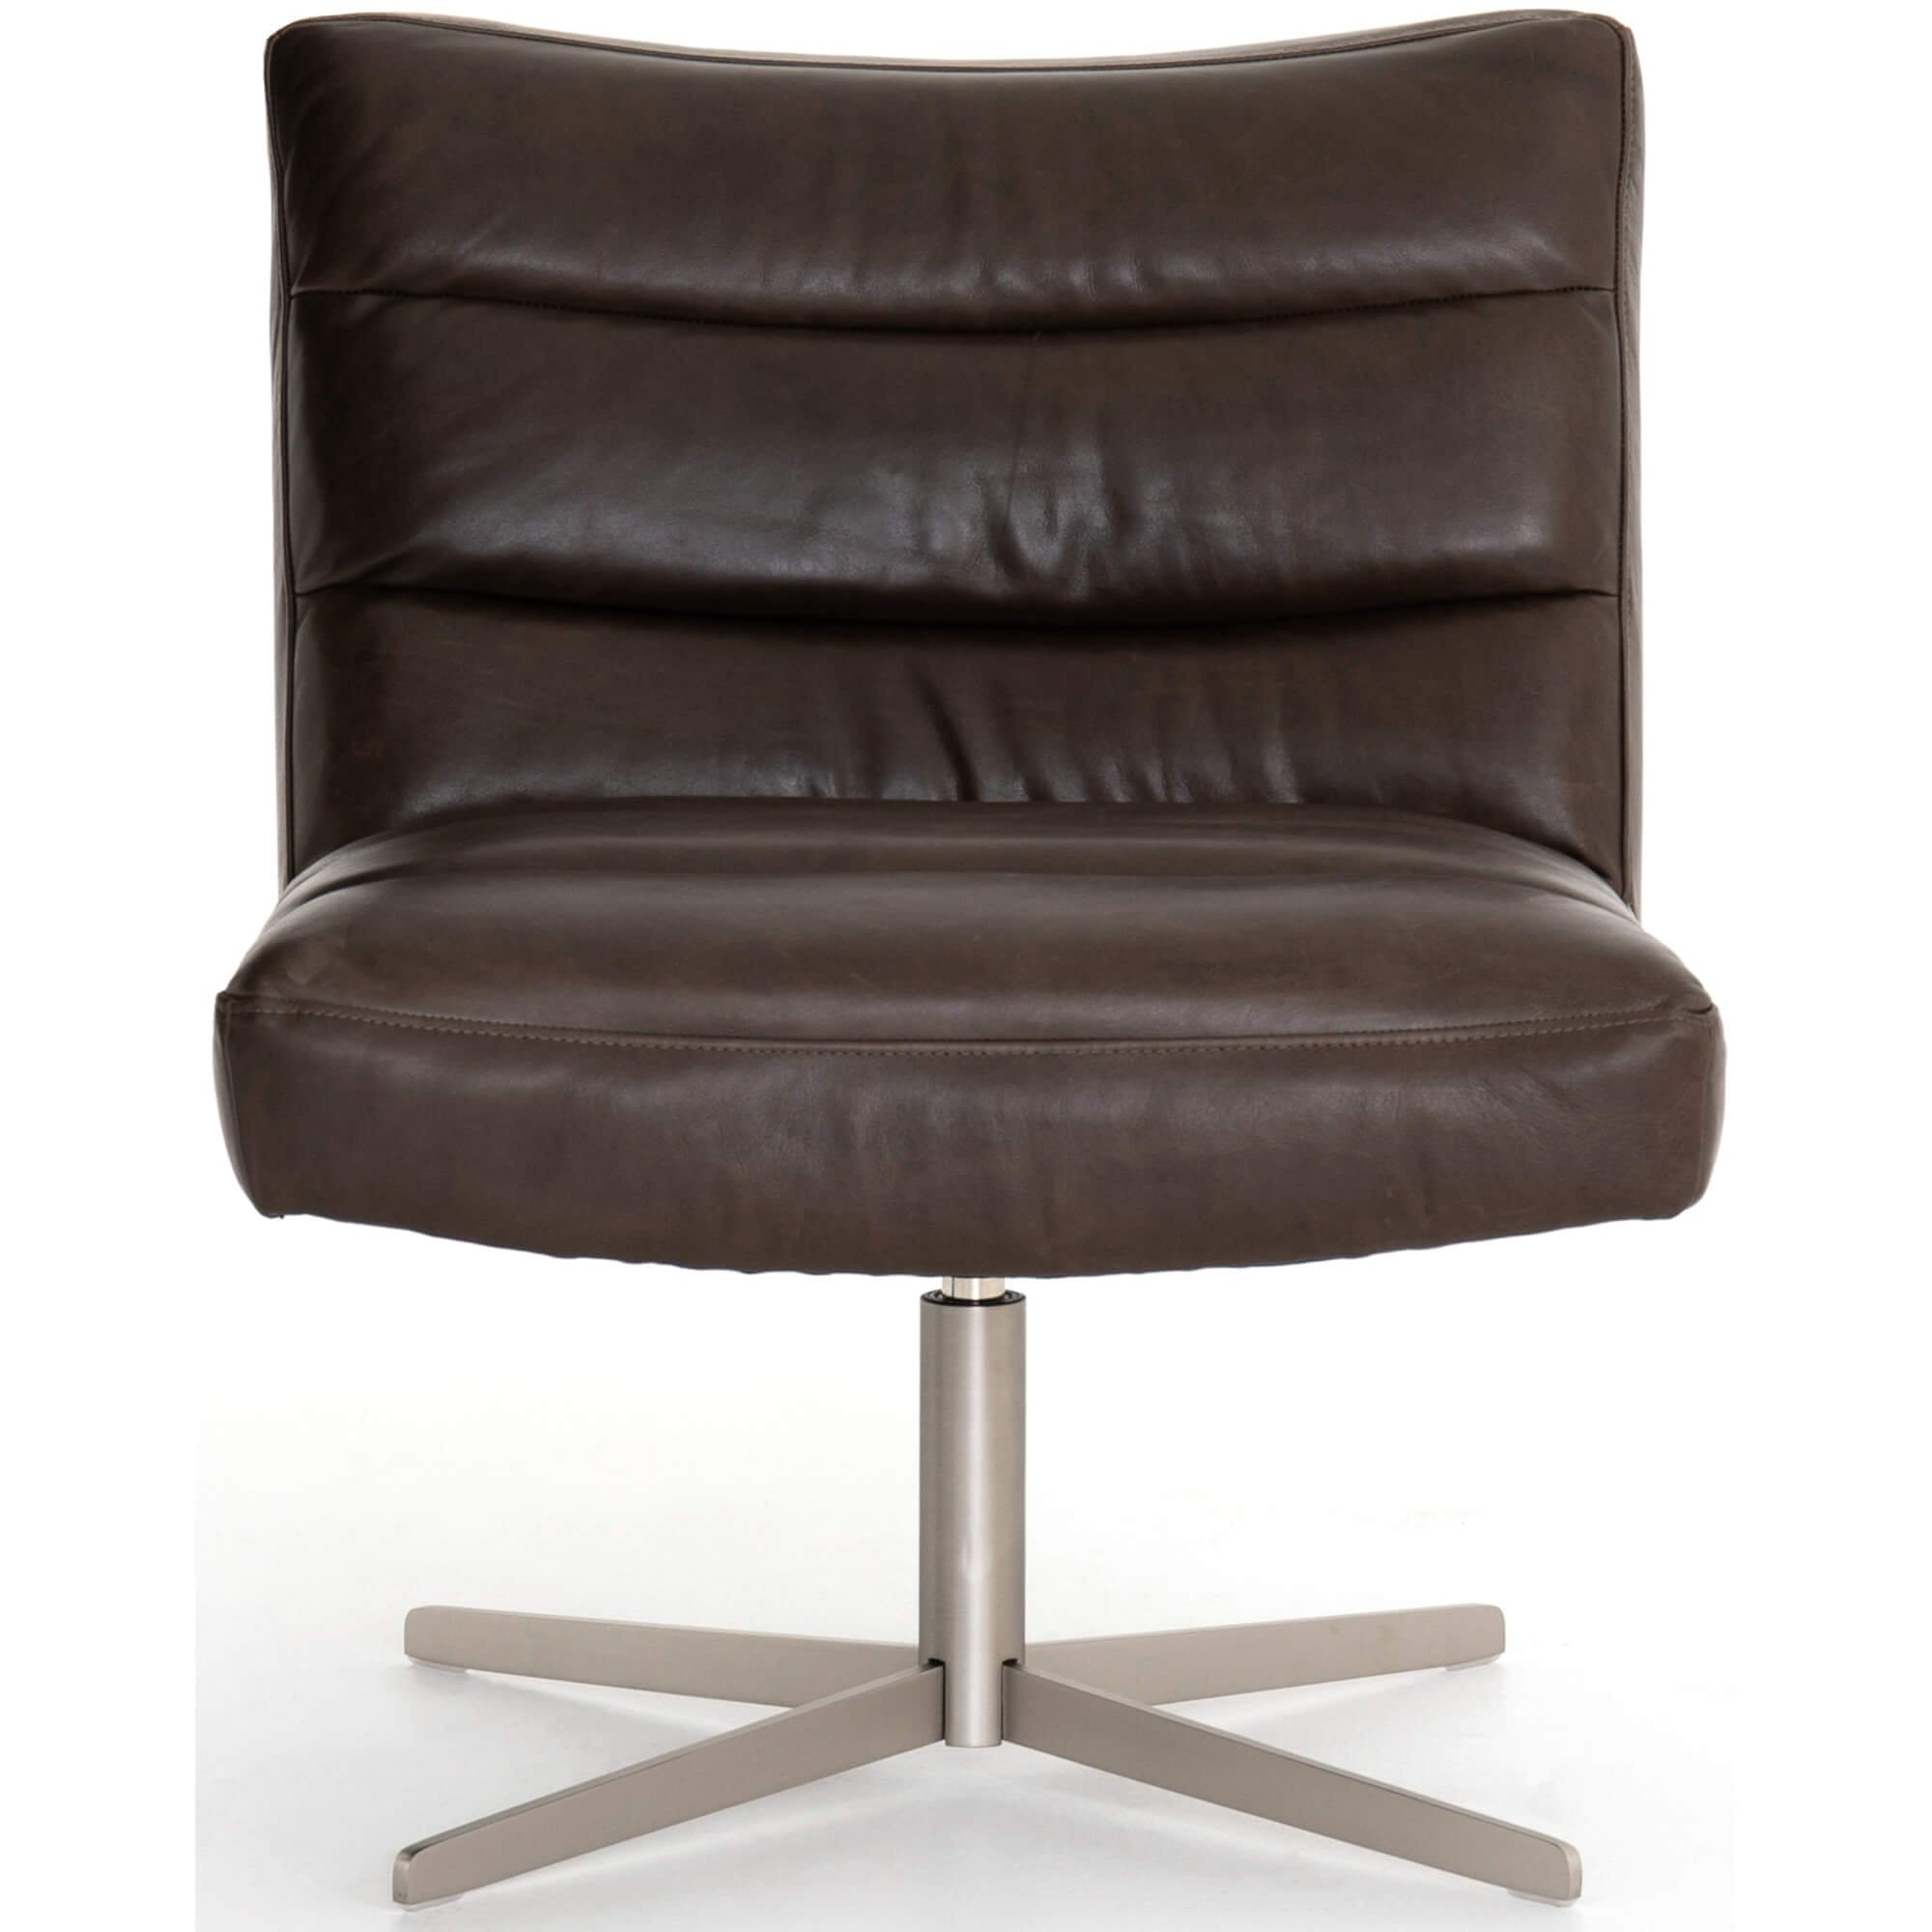 Pleasing Clio Leather Swivel Chair Dakota Charcoal High Fashion Home Inzonedesignstudio Interior Chair Design Inzonedesignstudiocom